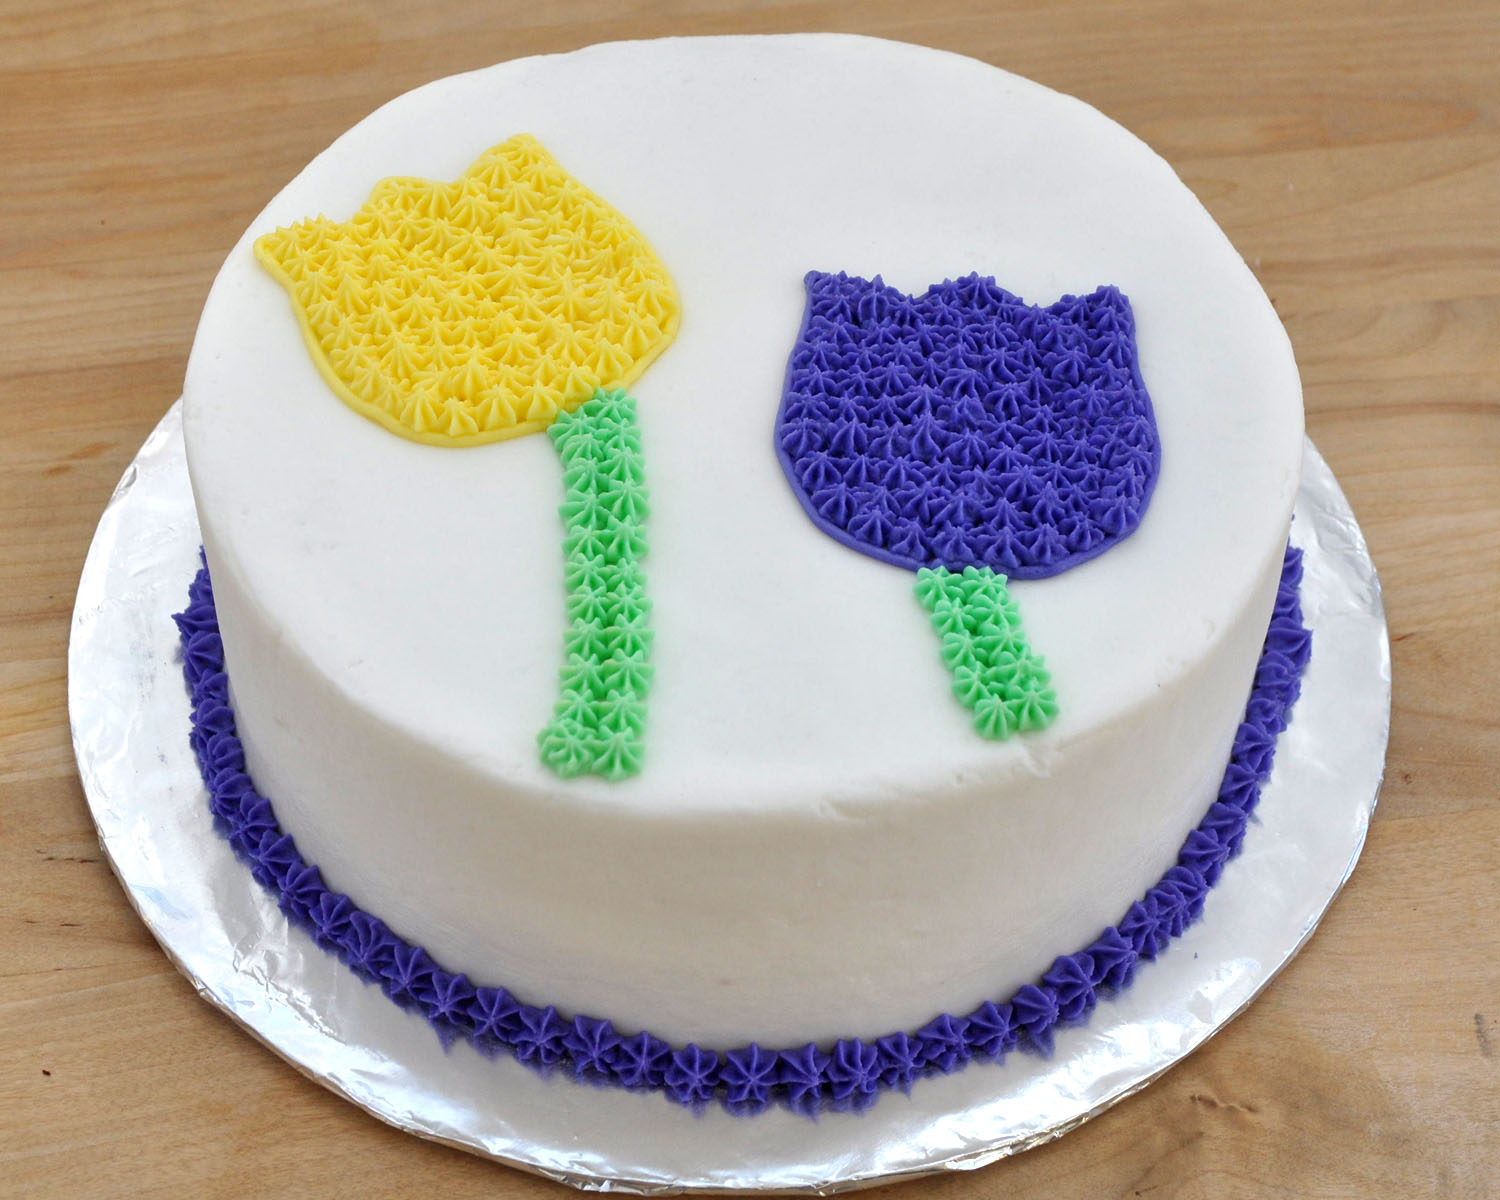 Simple Cake Decorations For Birthdays : Beki Cook s Cake Blog: Cake Decorating 101 - Easy Birthday ...